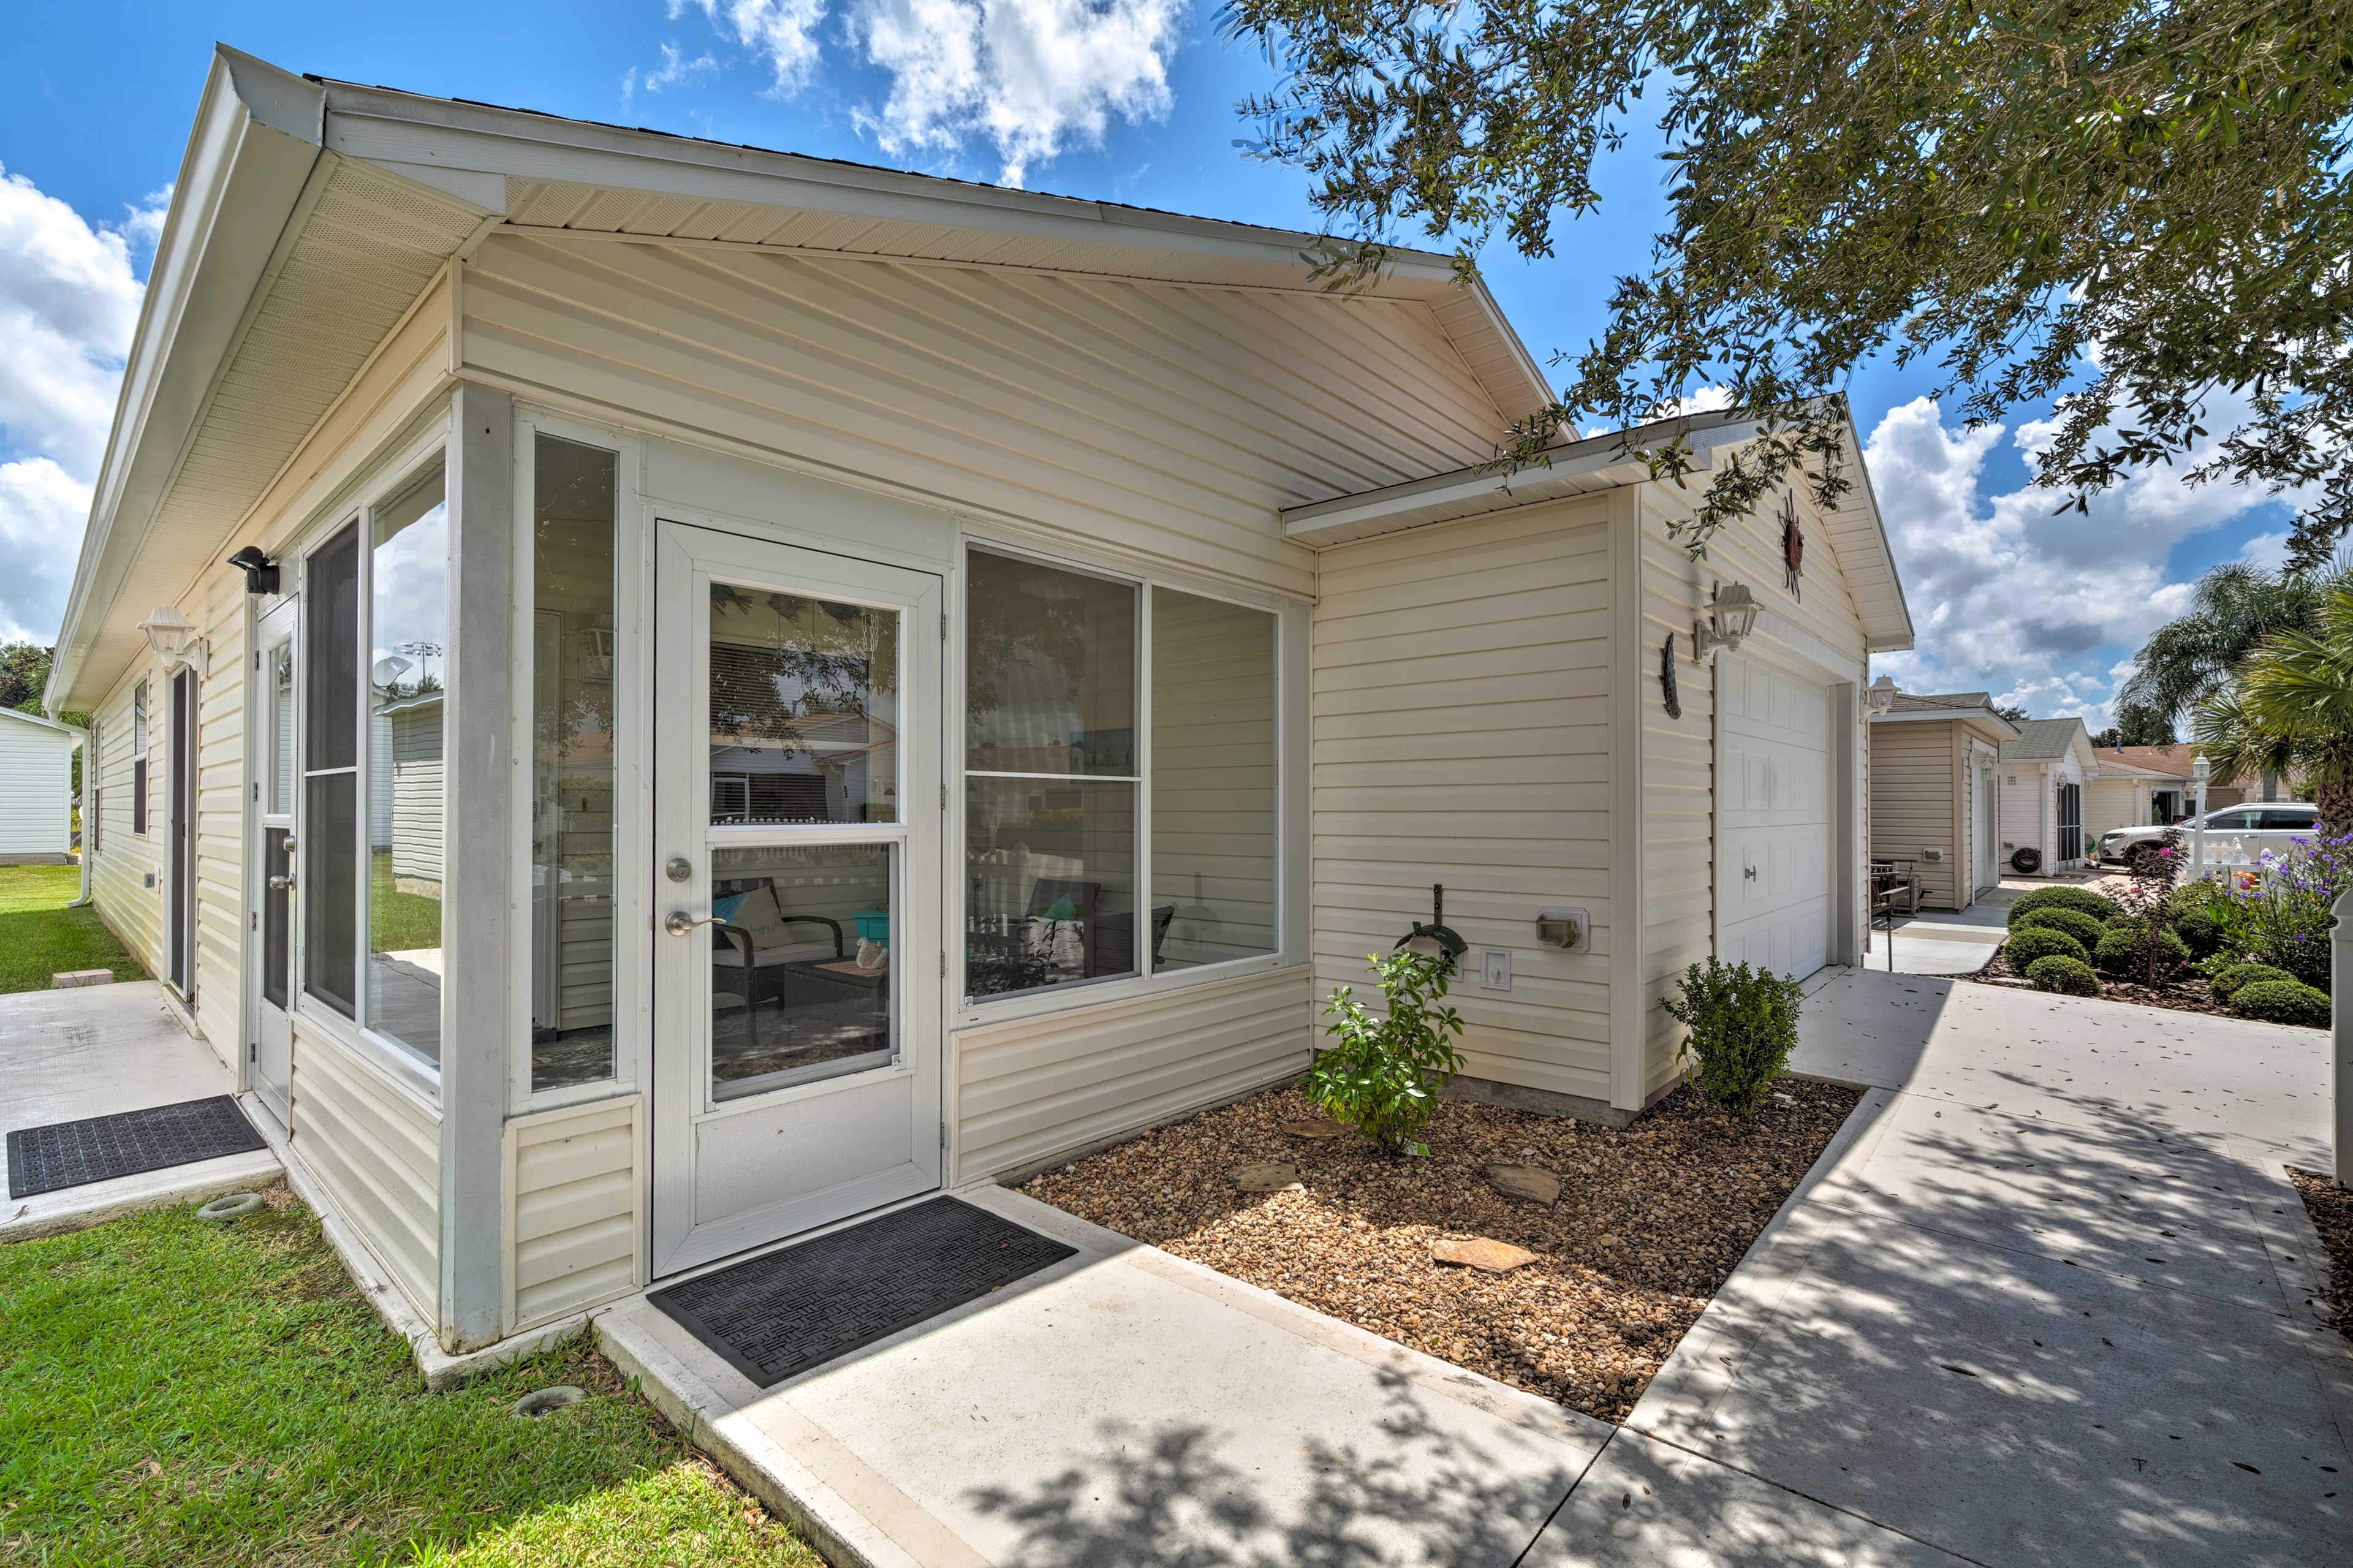 Live the Orlando life in style at this 2-bedroom, 2-bathroom home!